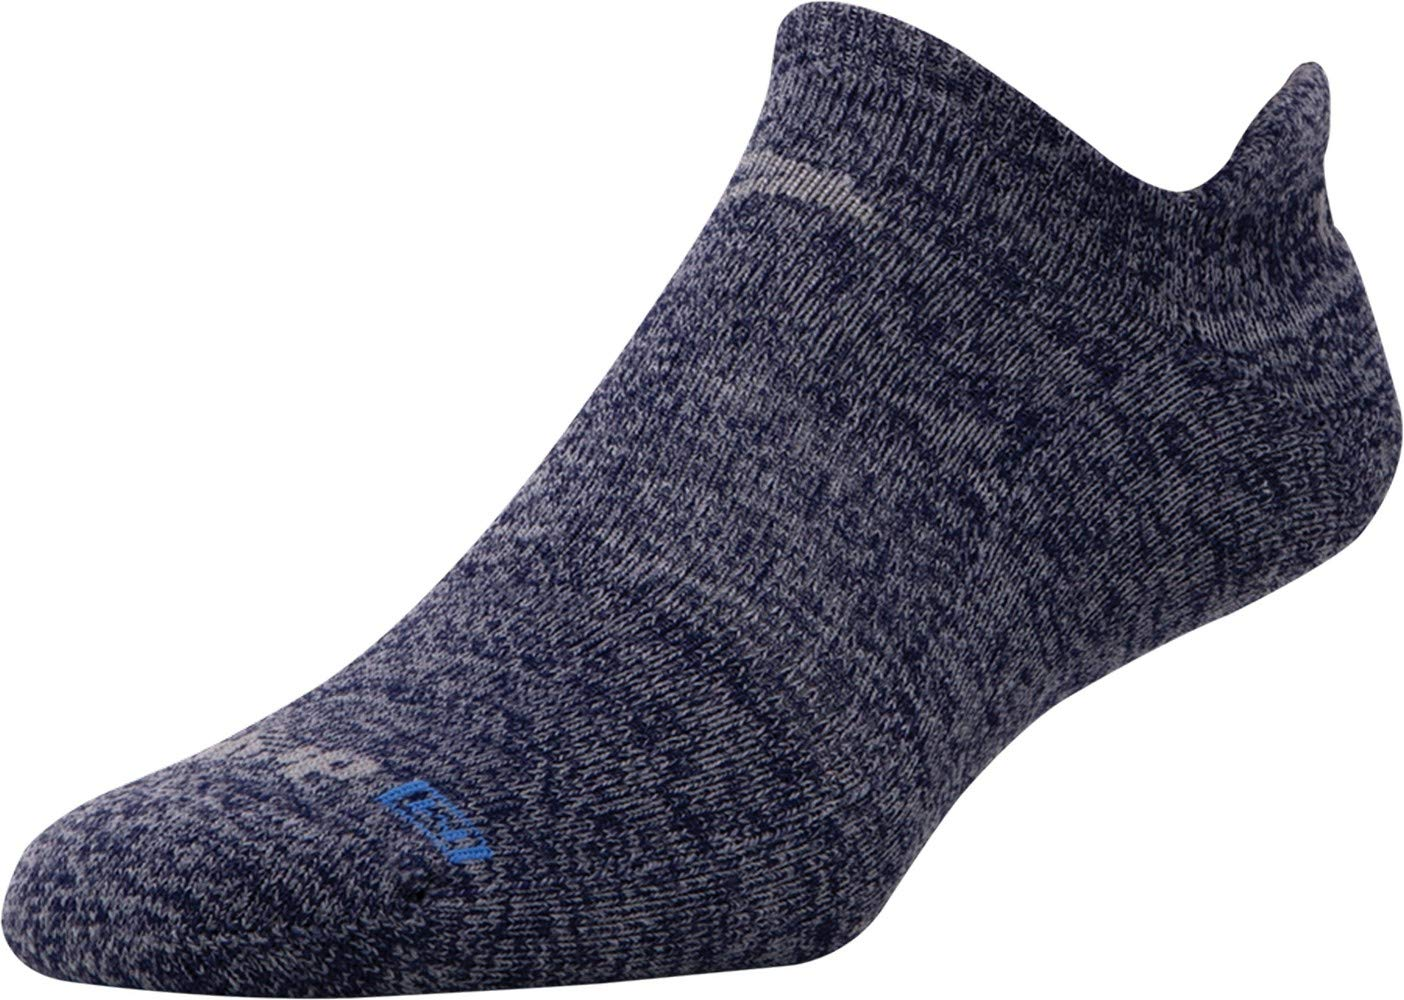 Running Lite-Mesh No Show Tab (Navy Heathered, X-Large) by Drymax